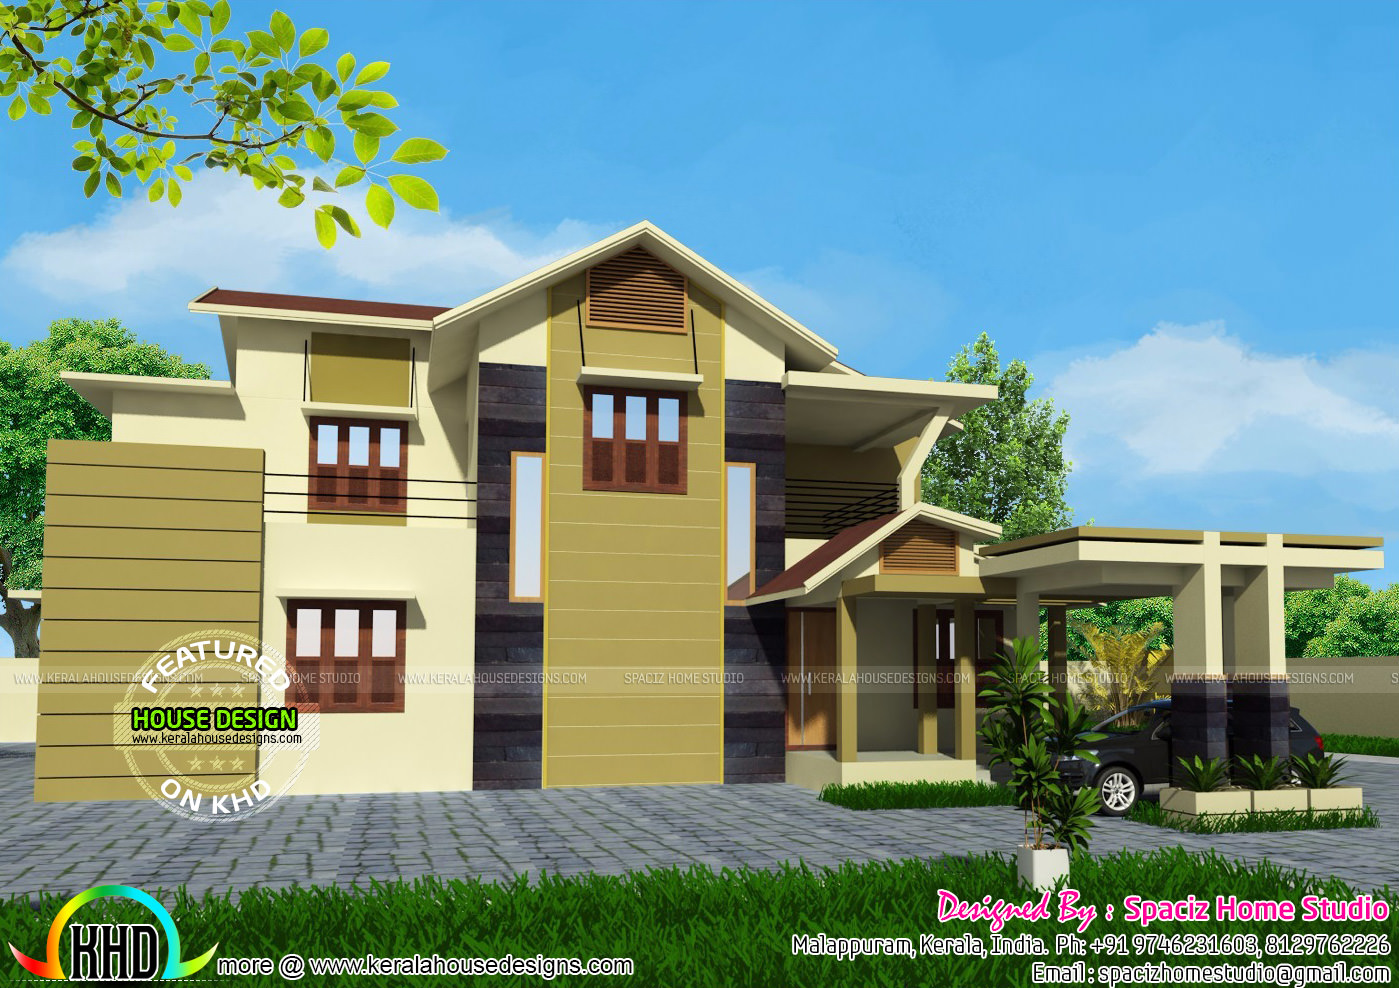 200 sqm modern house plan kerala home design and floor plans for 100 sqm floor area house design